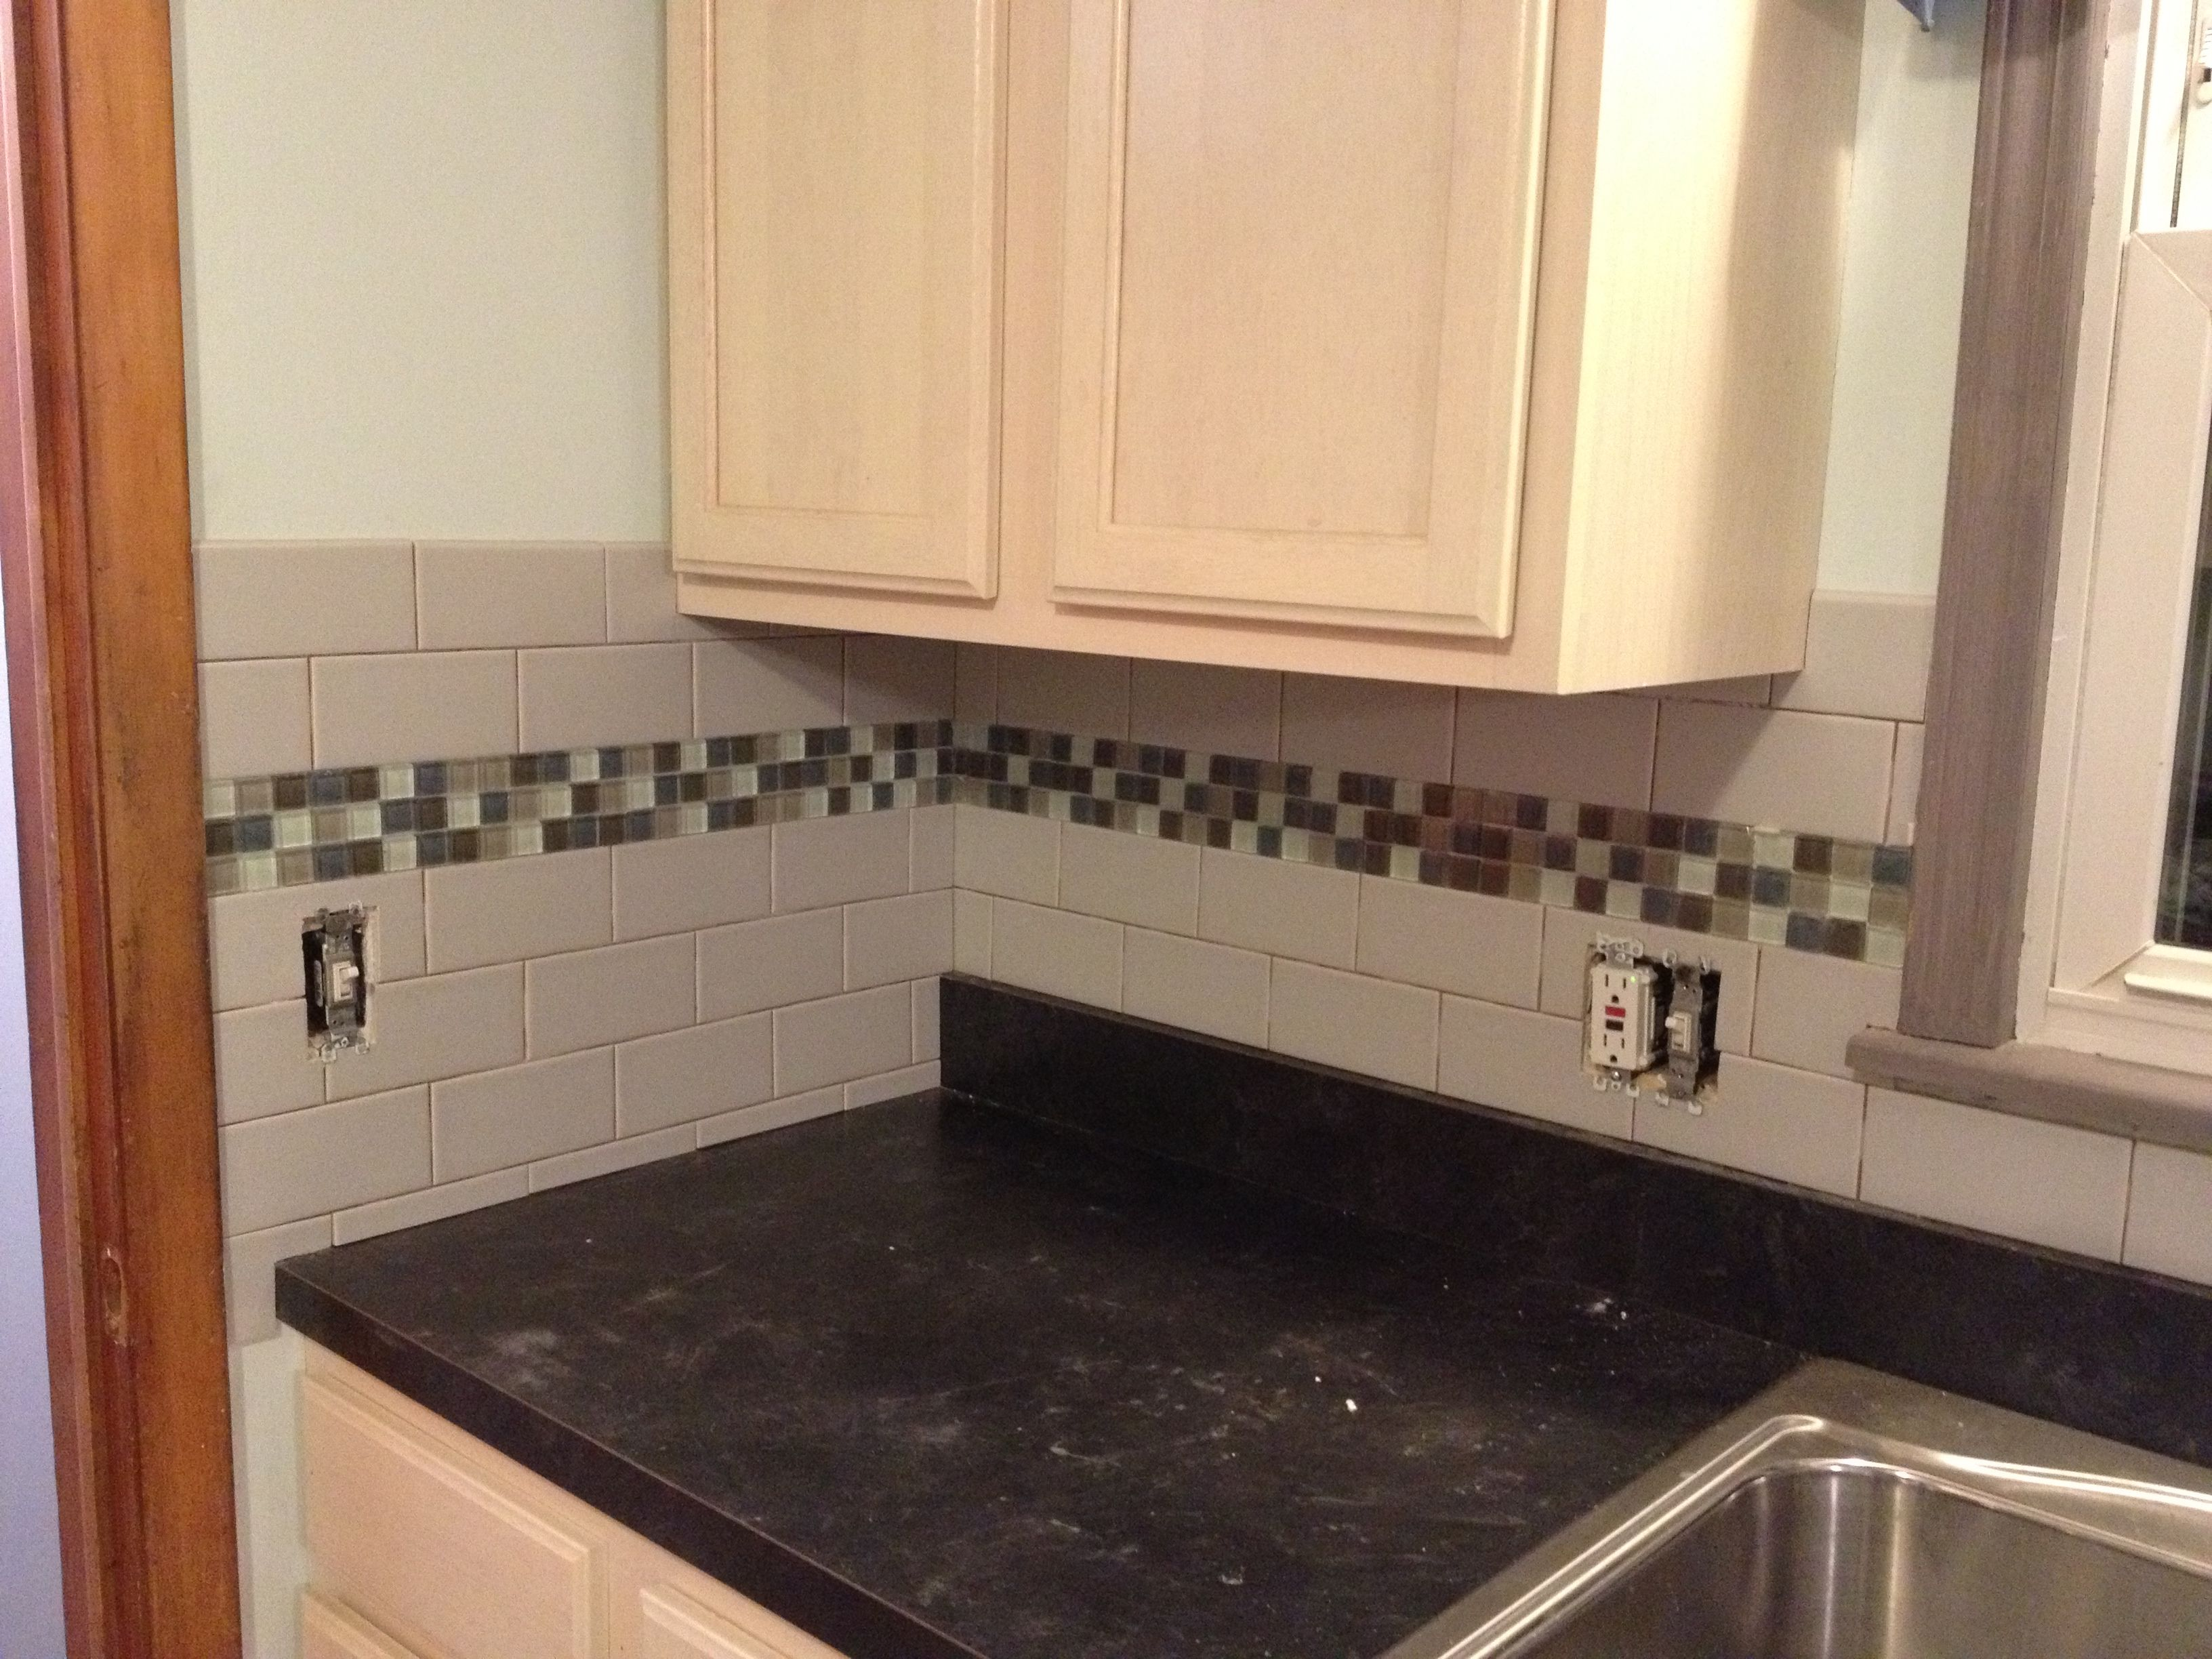 Kitchen Design Subway Tile Backsplash Subway Tile Backsplash With Glass Tile Accent Love My